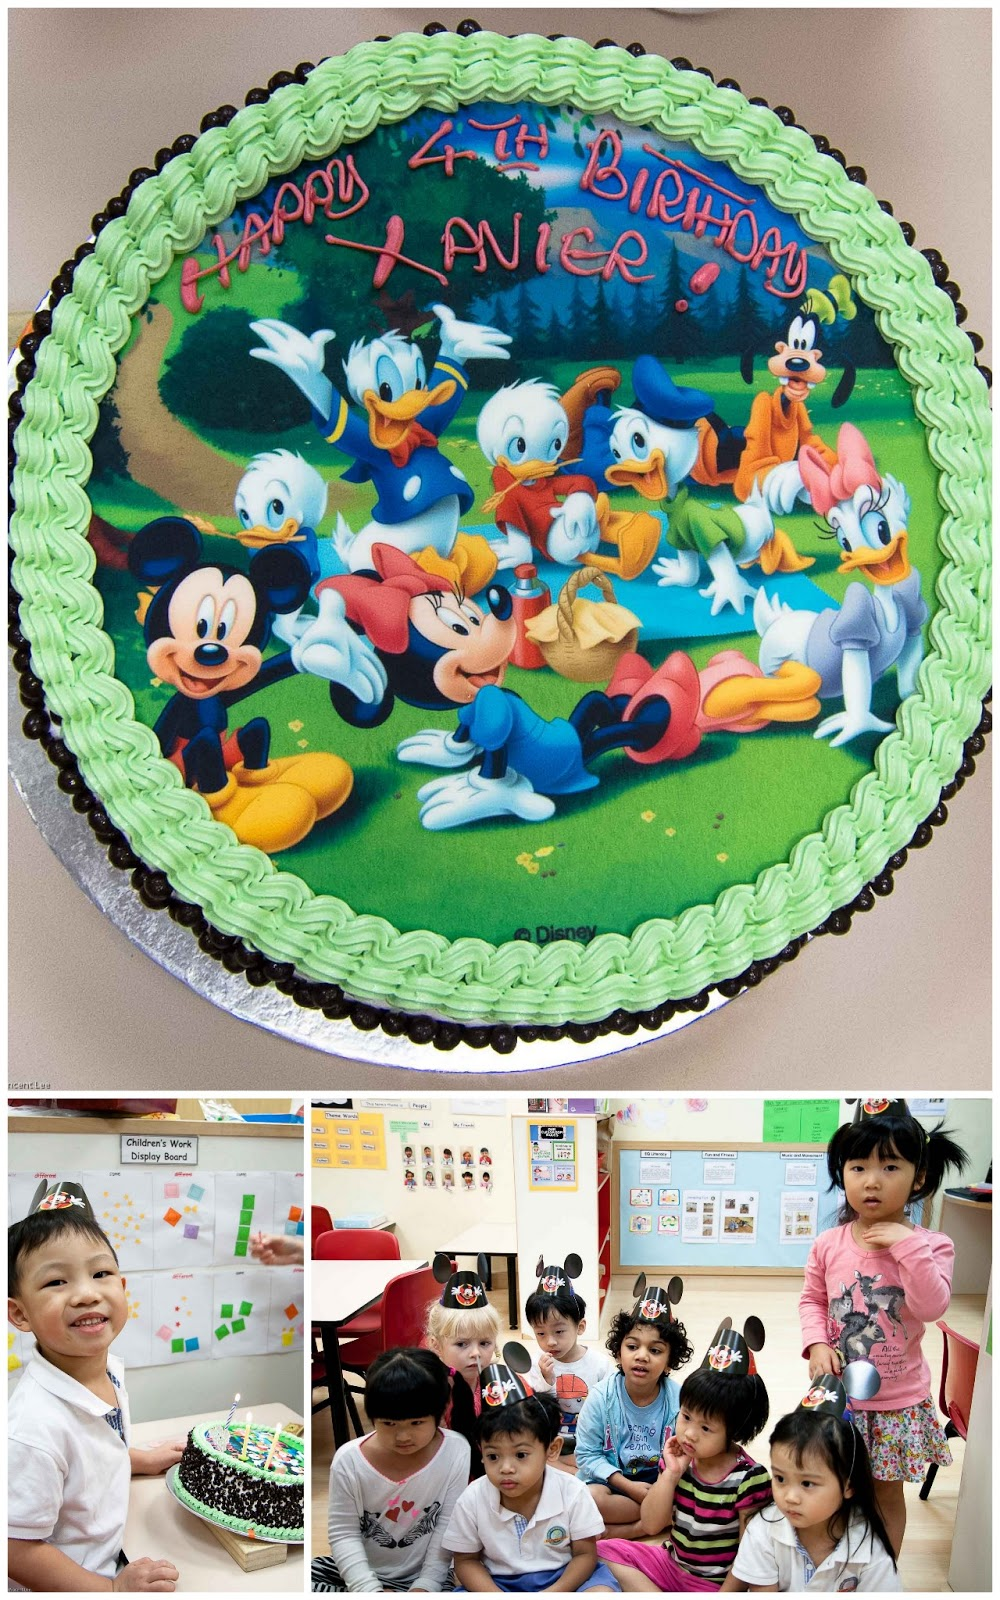 ... cake and that all have to sing birthday song to him later. Candles